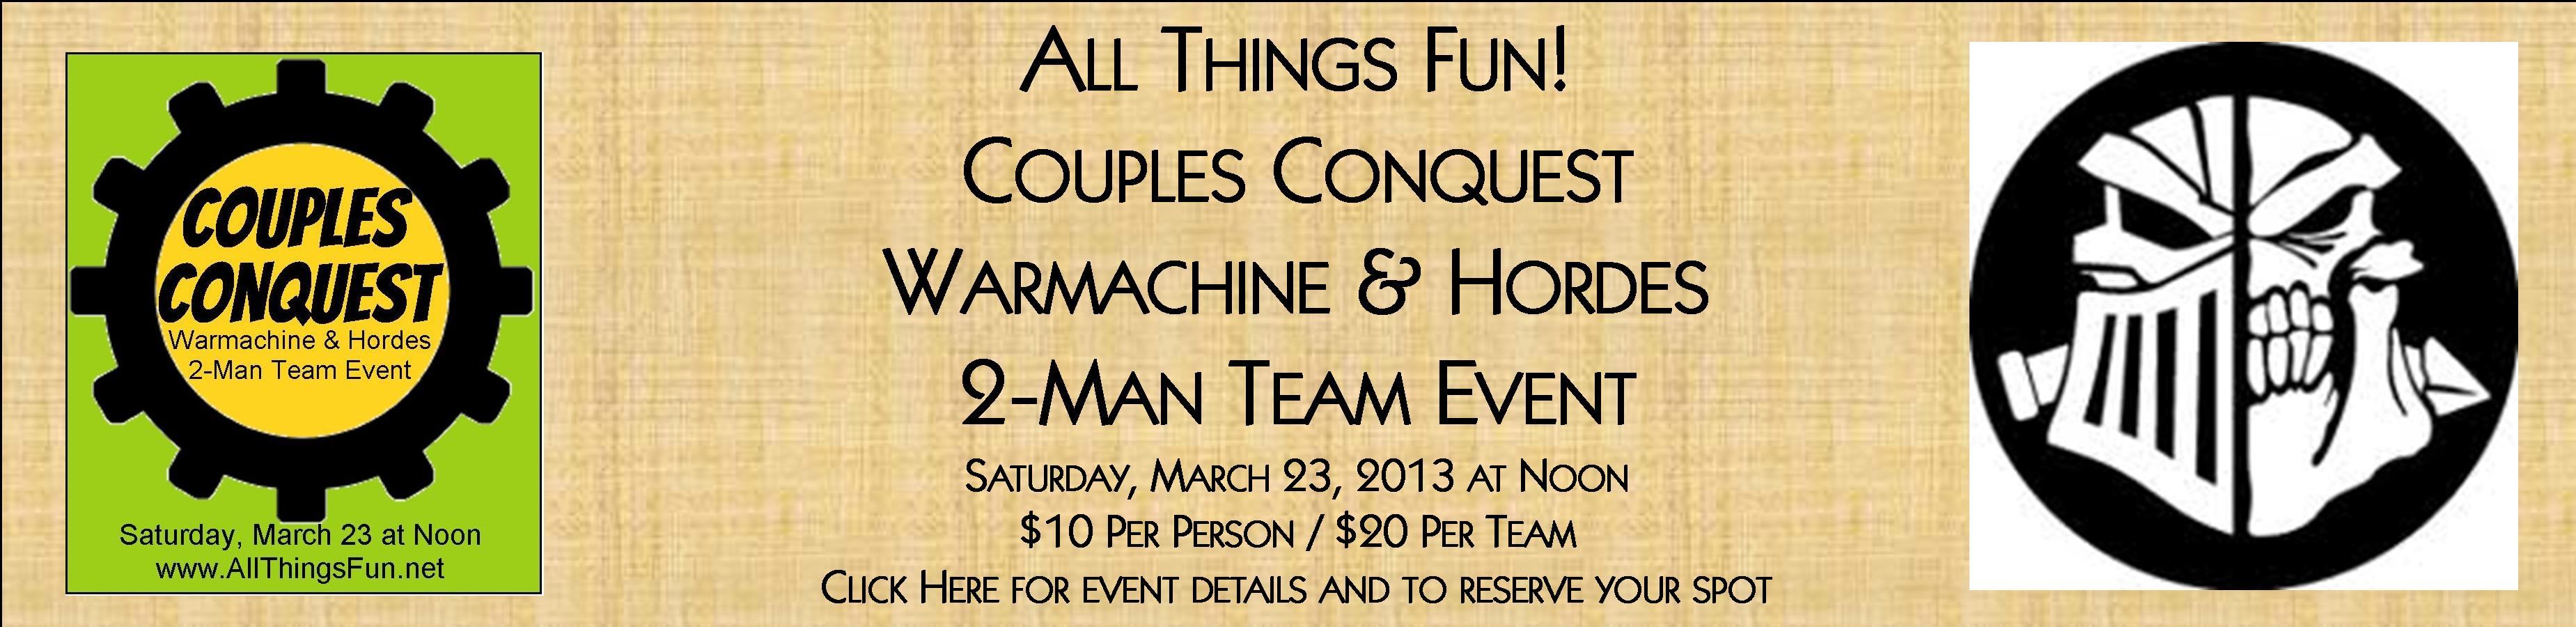 Warmachine Couples Conquest Tournament @ All Things Fun!